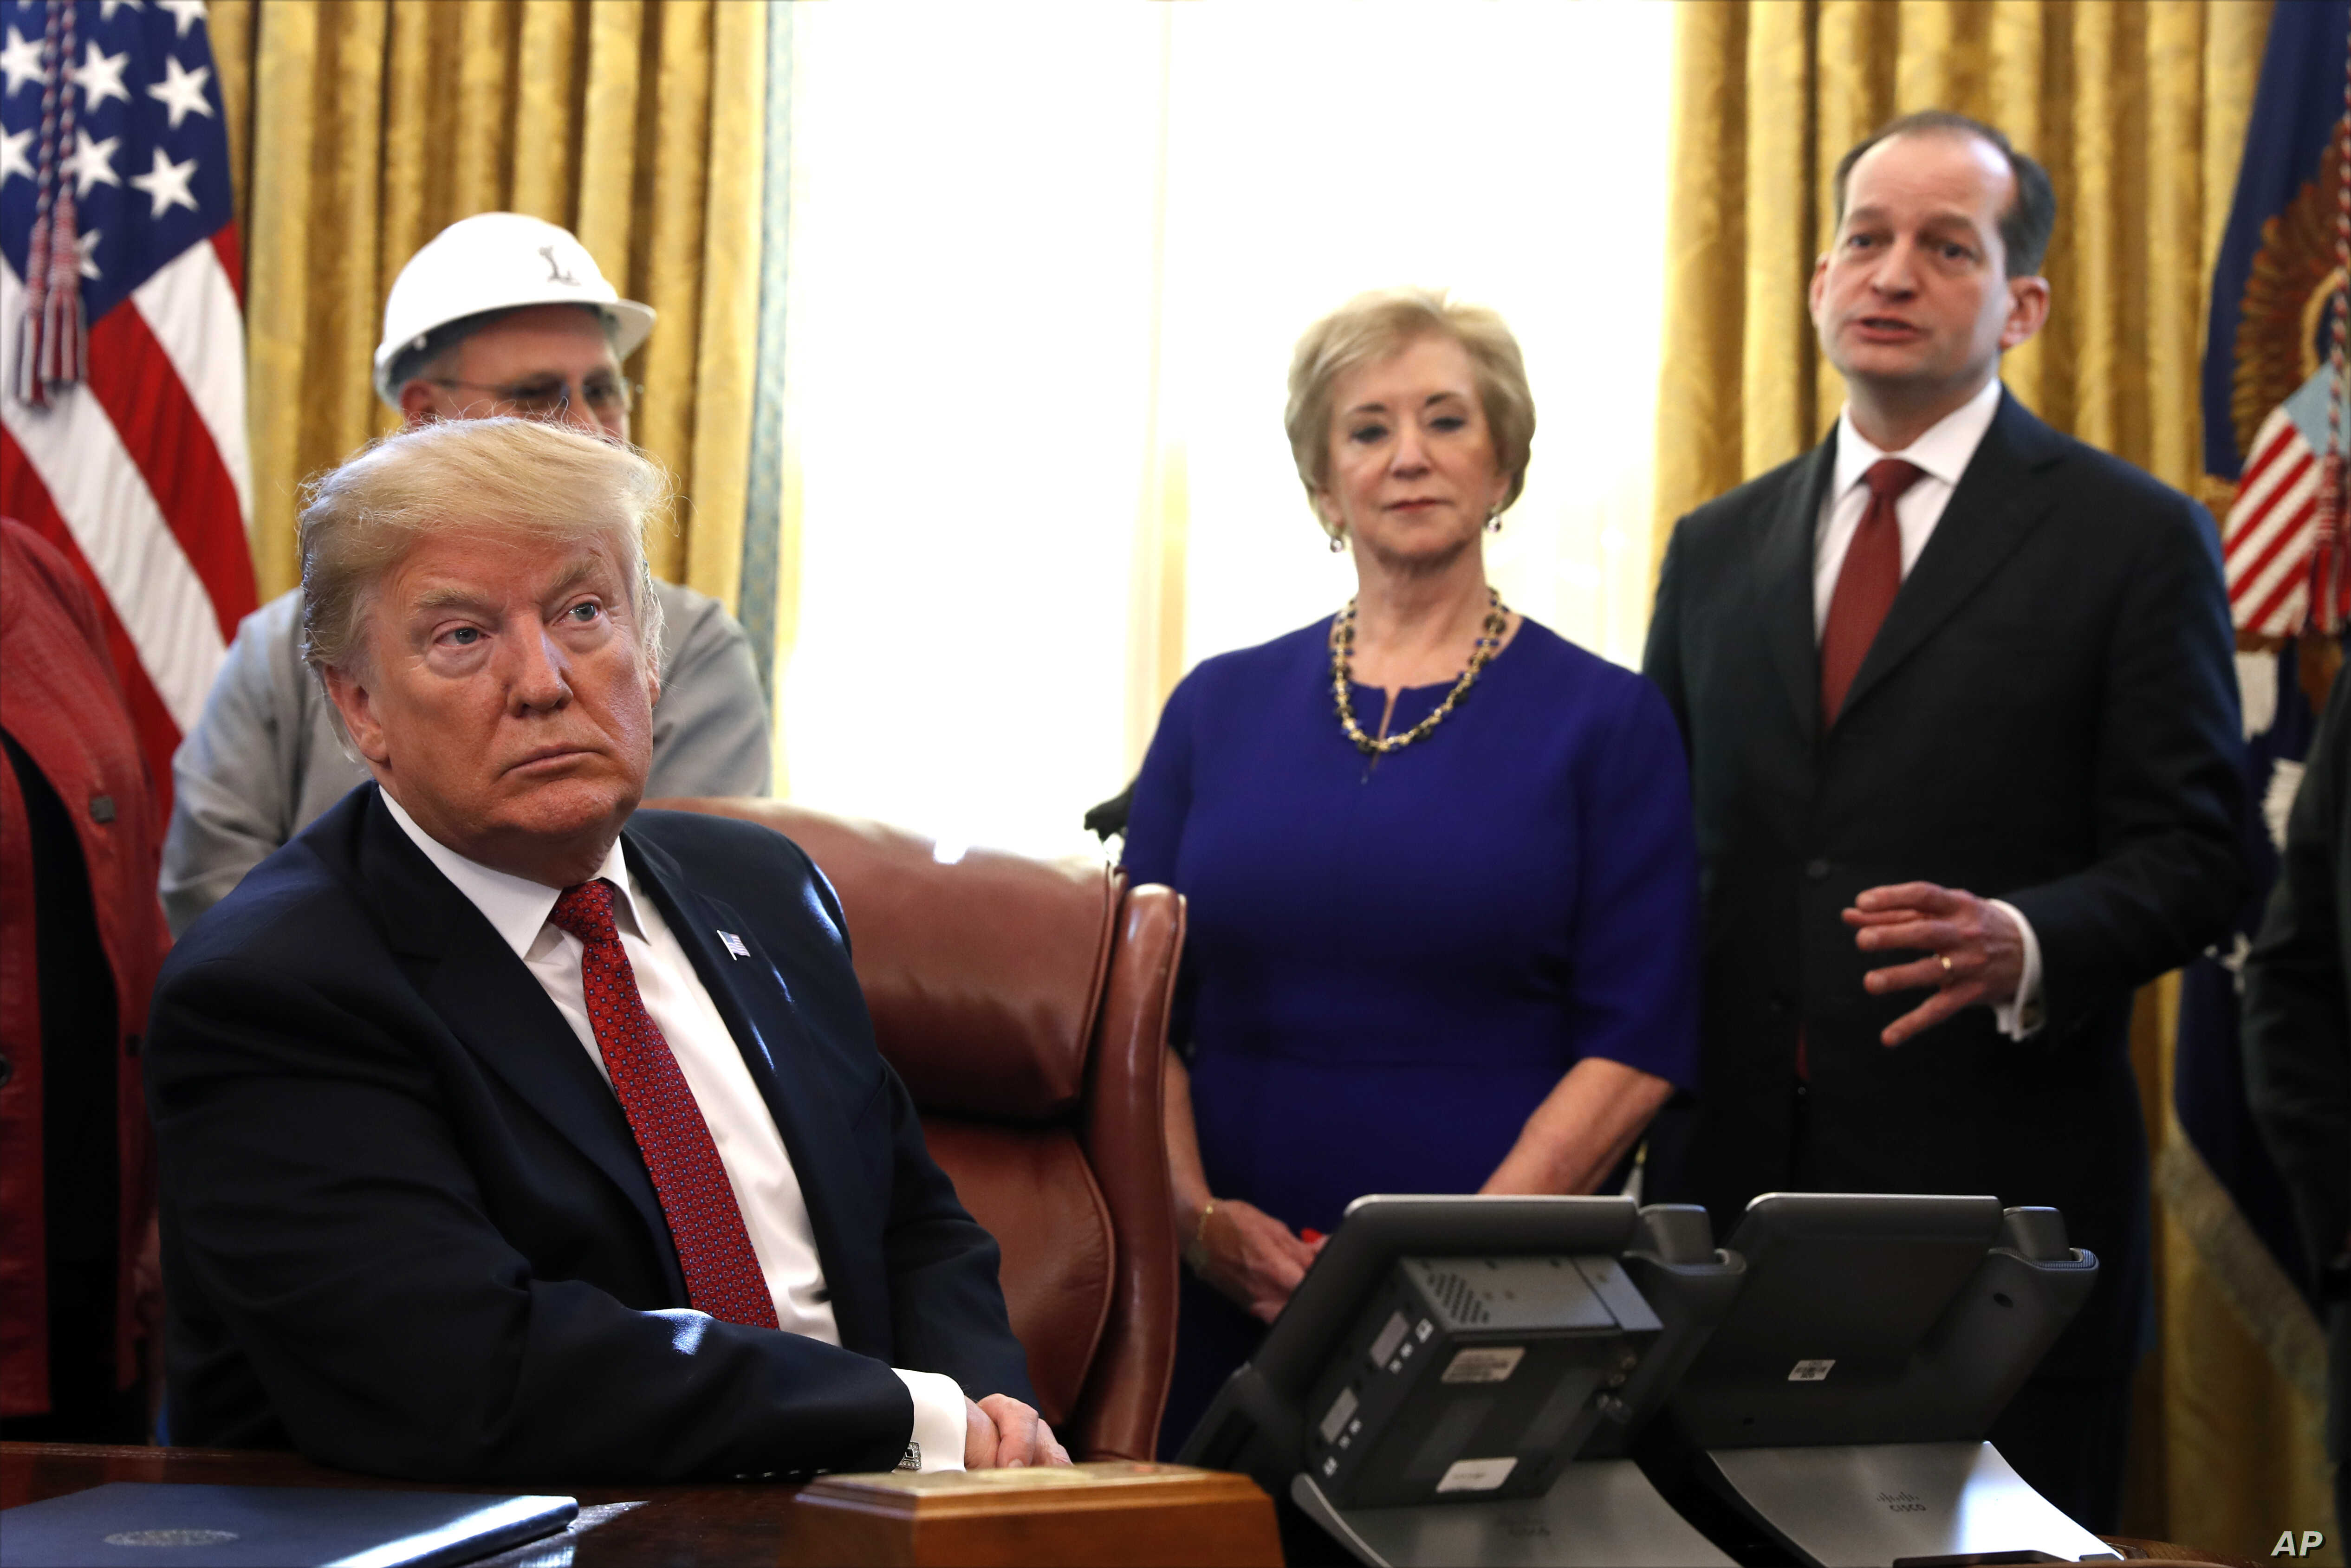 President Donald Trump listens as Labor Secretary Alex Acosta, right, speaks during a meeting with American manufacturers in the Oval Office of the White House, Thursday, Jan. 31, 2019, in Washington. Trump was signing an executive order pushing…